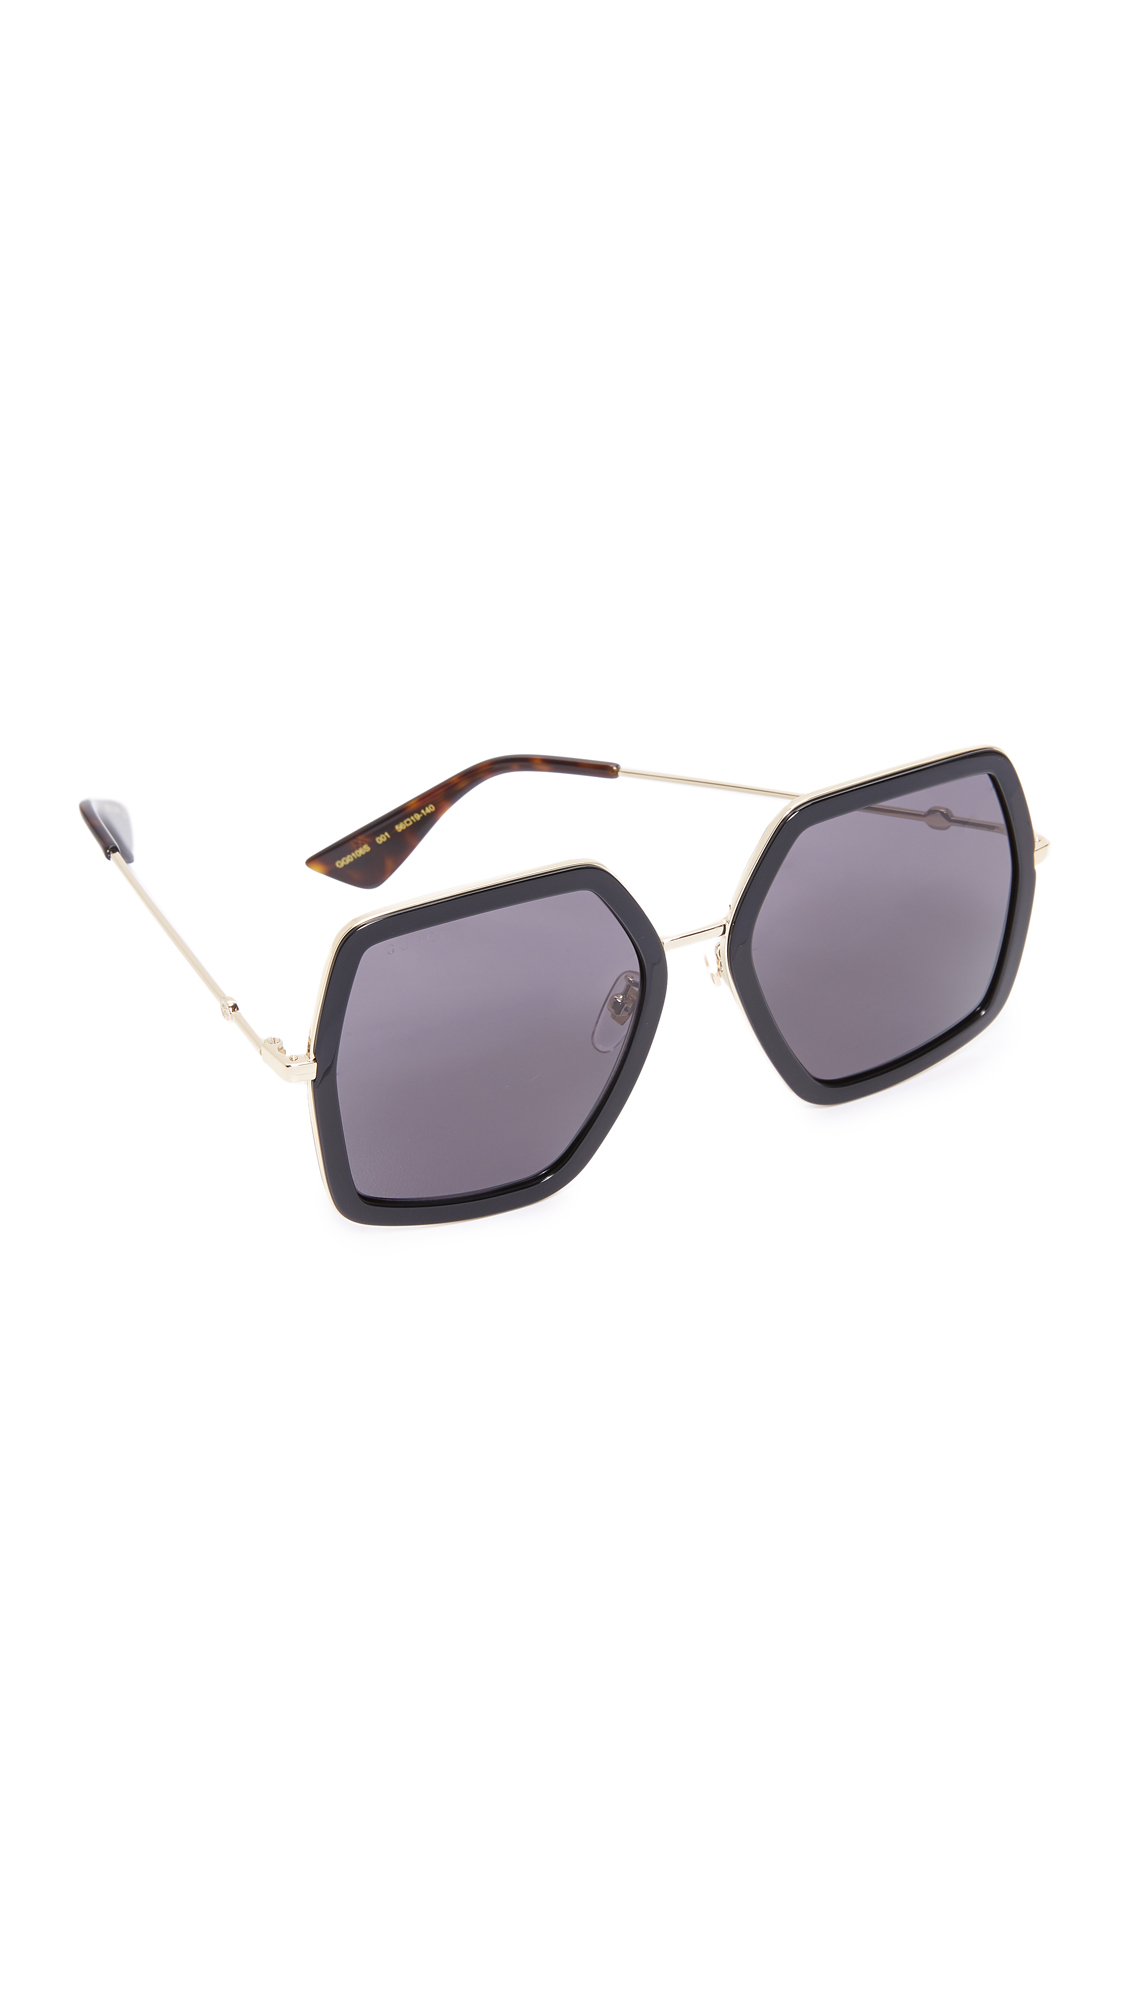 Gucci Urban Web Block Sunglasses - Black/Grey